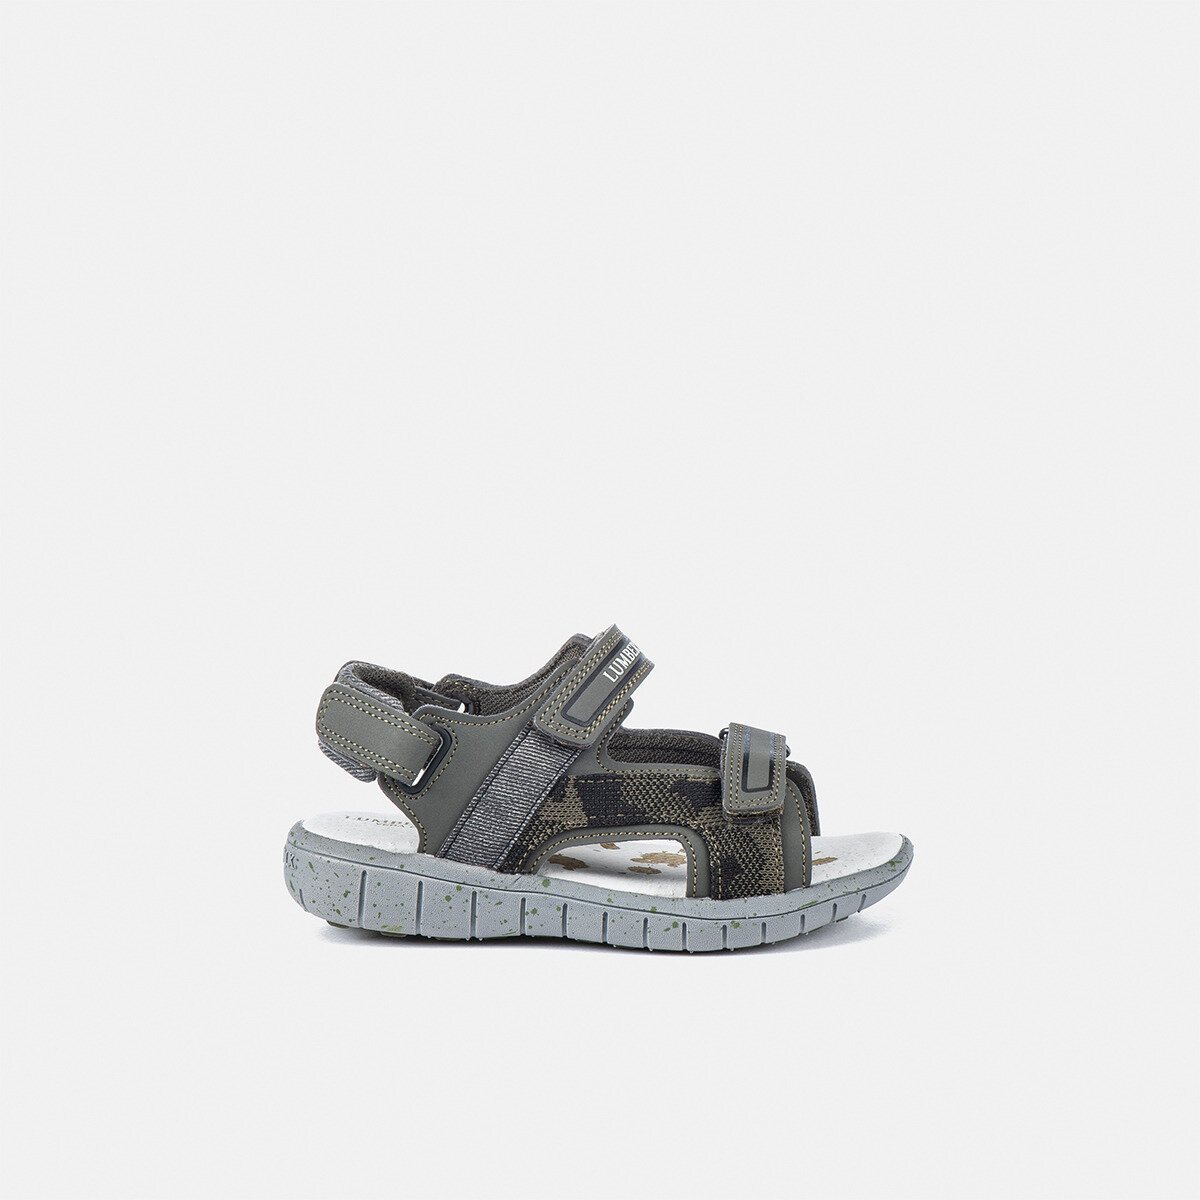 SPONGY MILITARY GREEN Boy Sandals